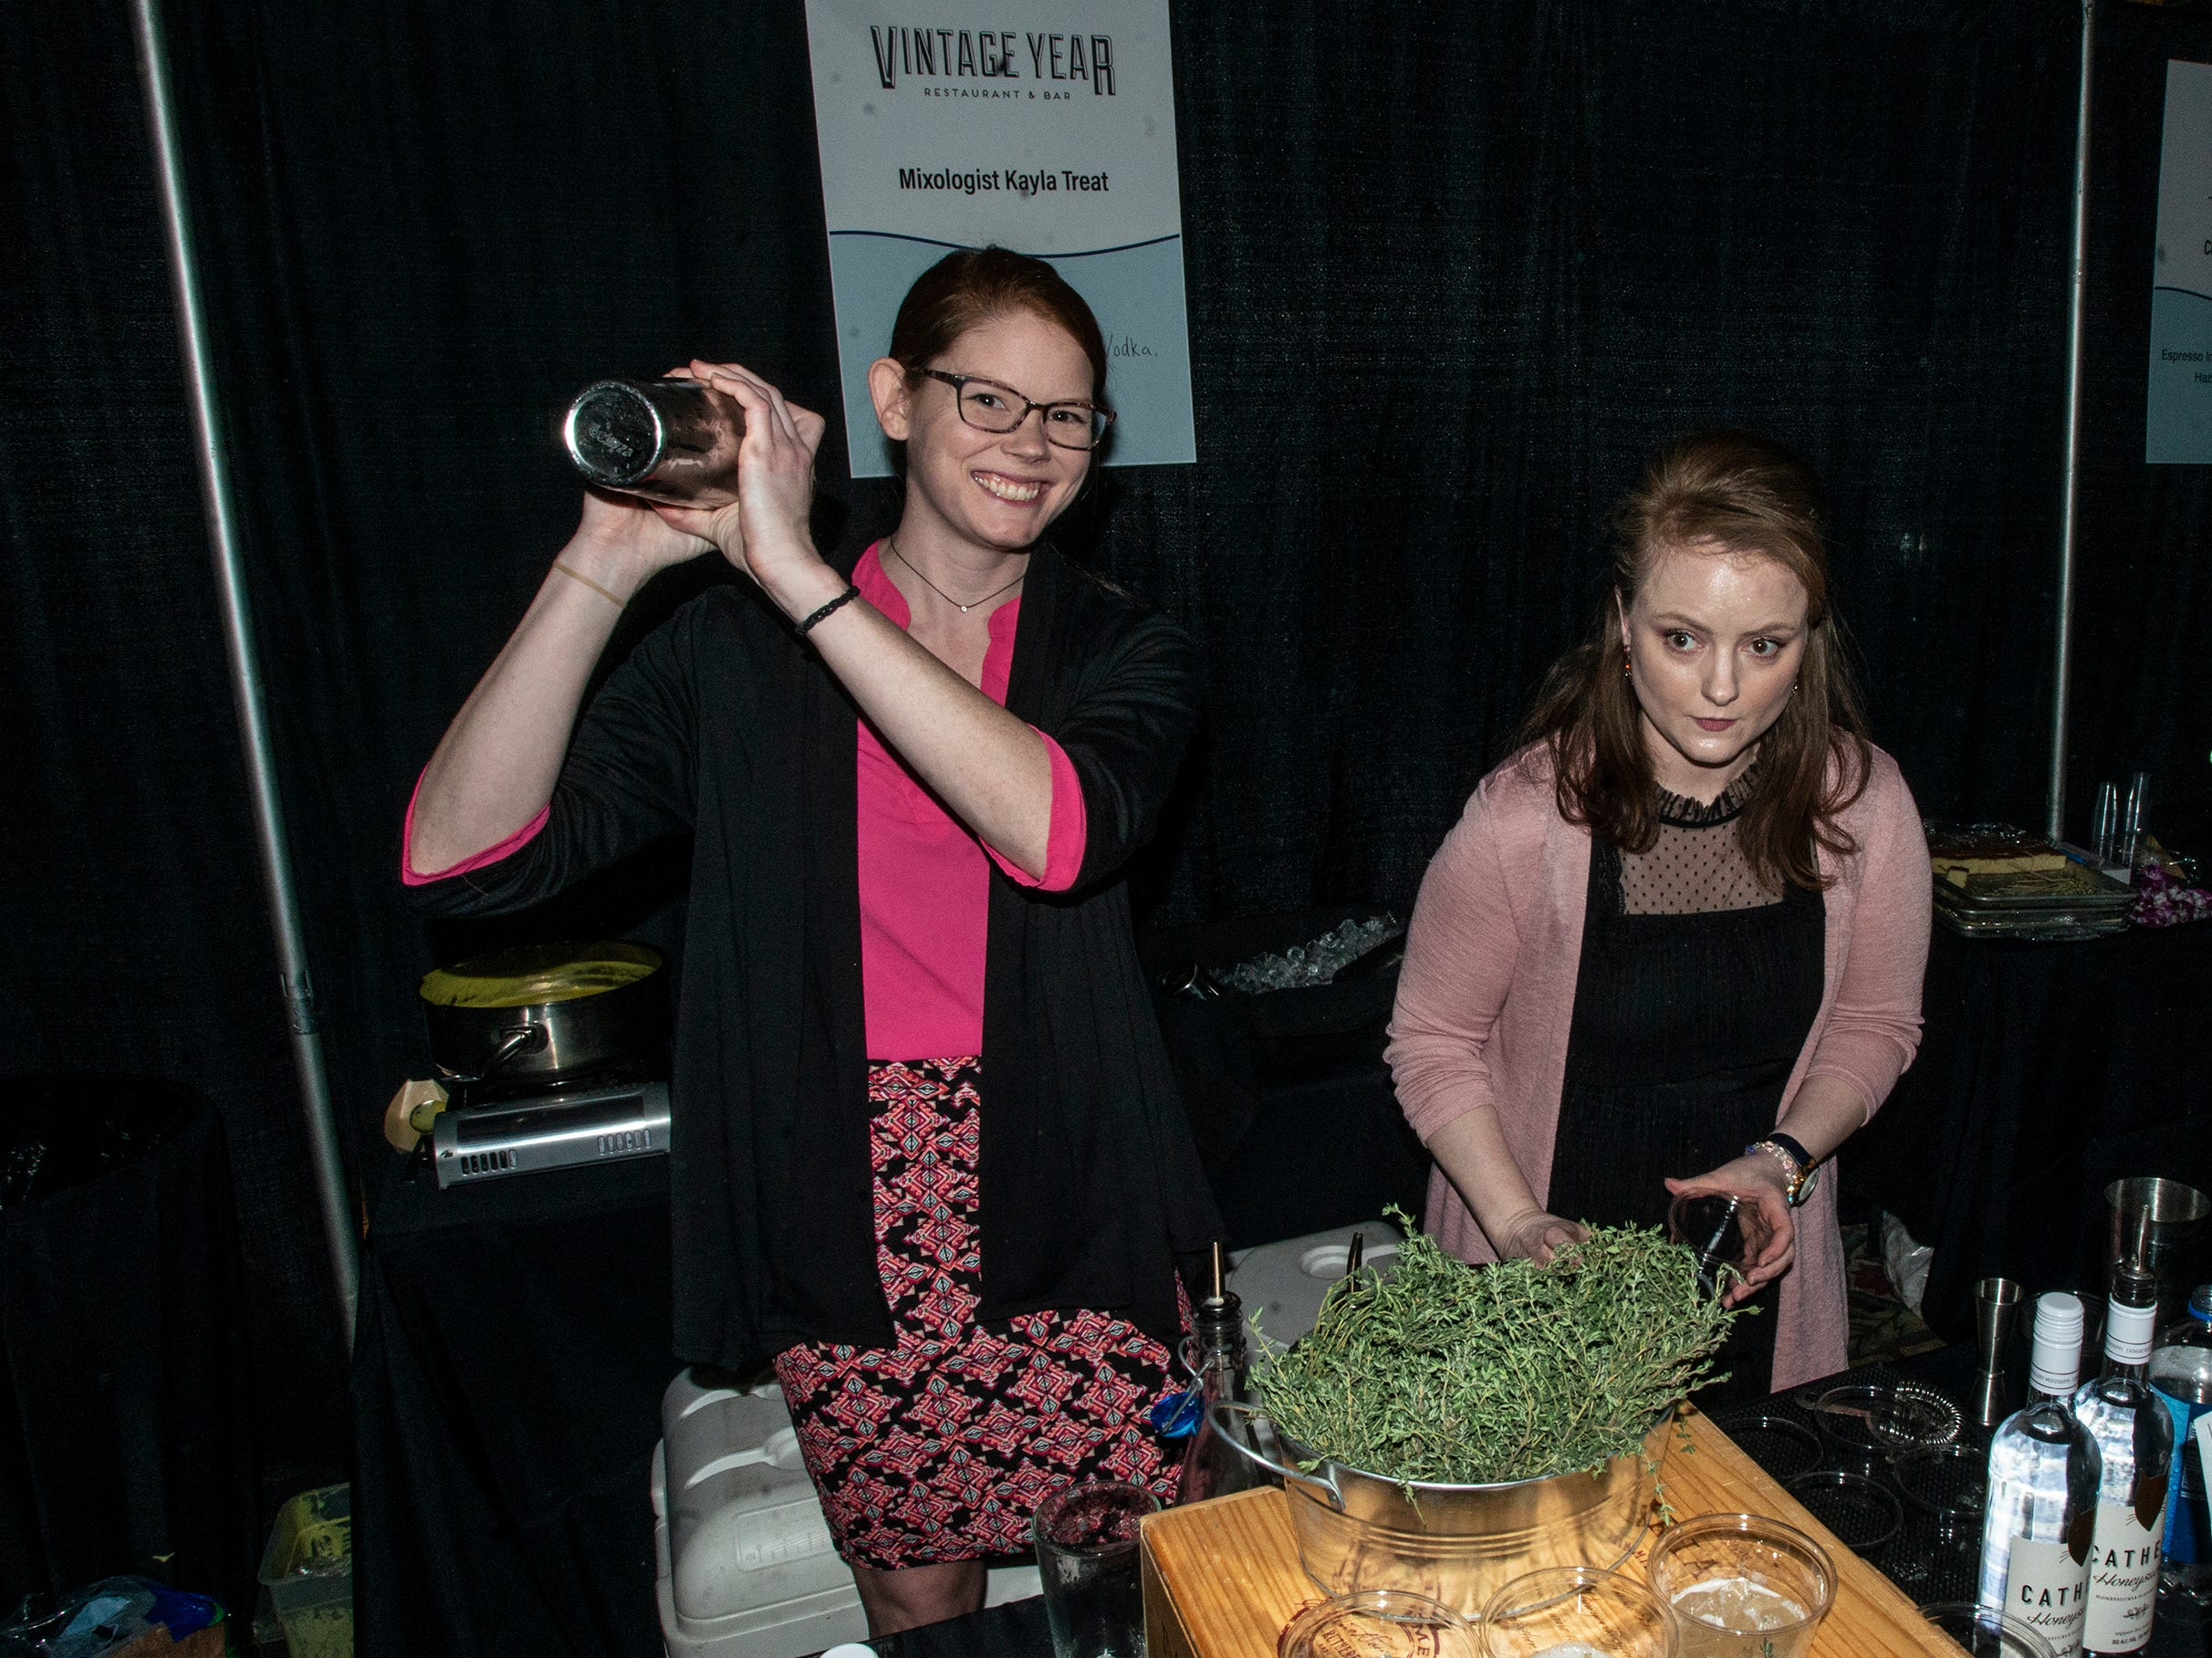 Vintage Year's Kayla Treat won for mixology with her Show Thyme drinks. The annual Feast of Flavours was held Monday, Jan. 28, 2019, at Alabama Shakespeare Festival in Montgomery.